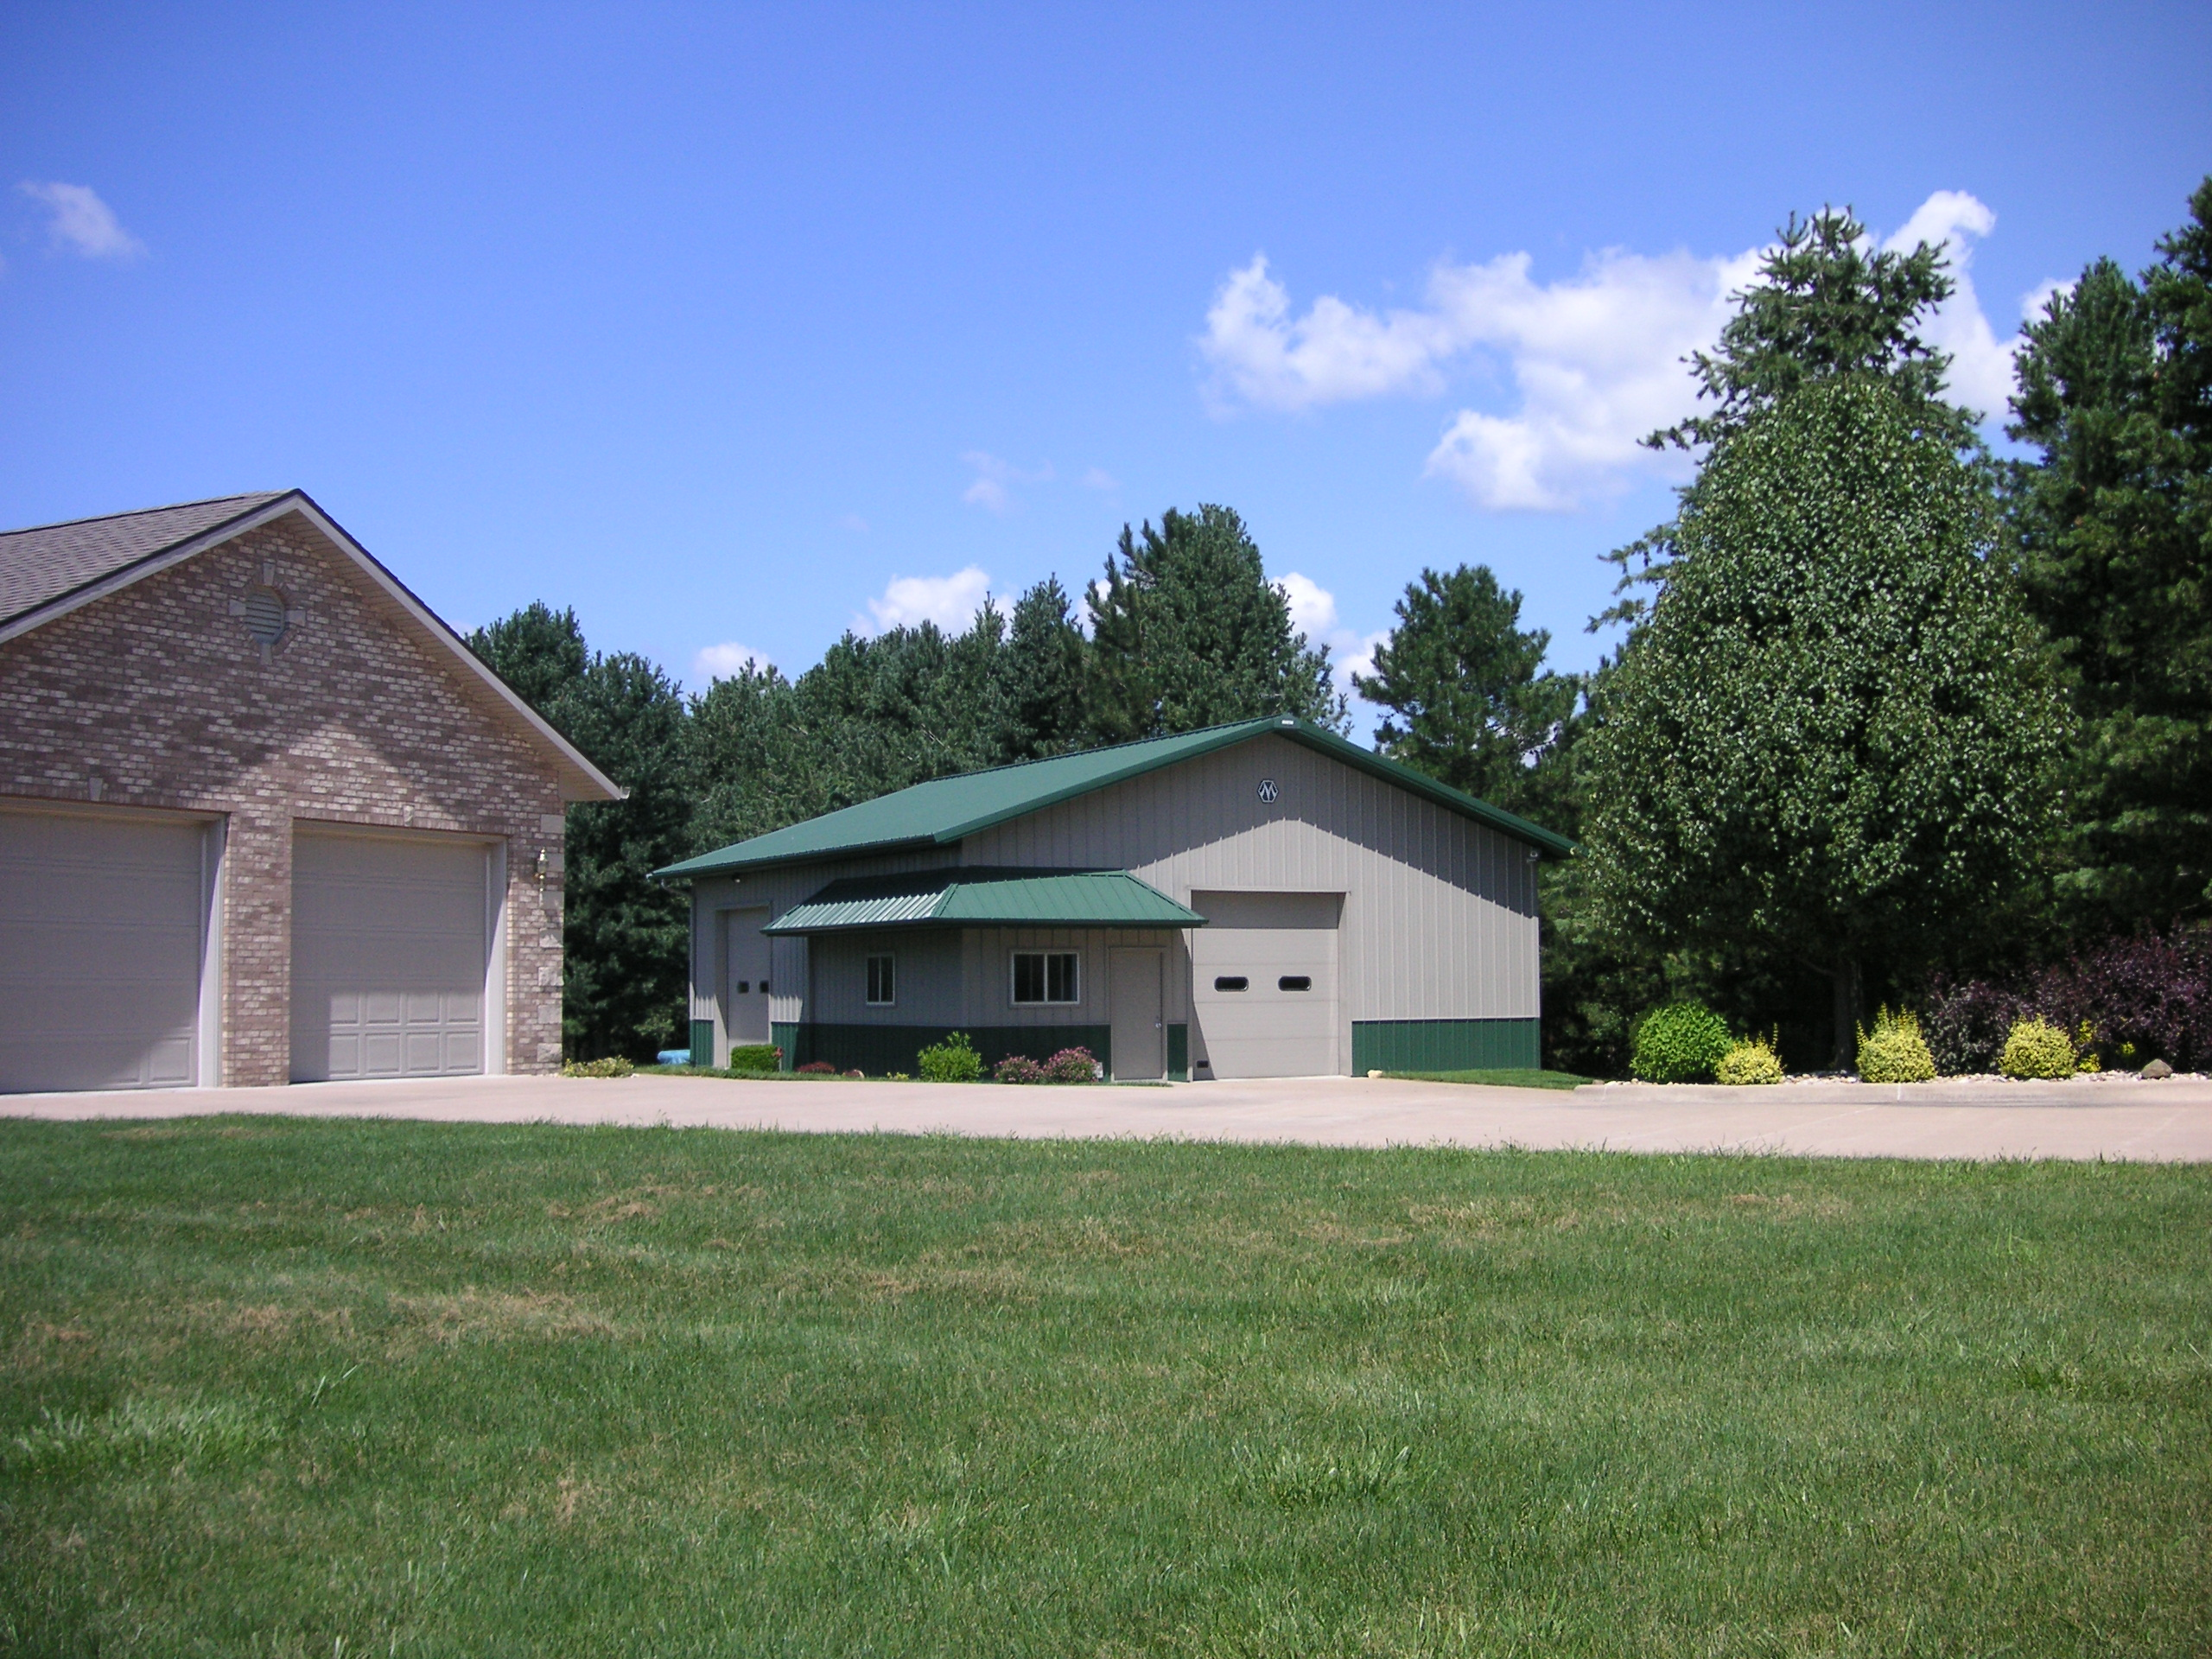 here is the quad cities house for sale with acreage you